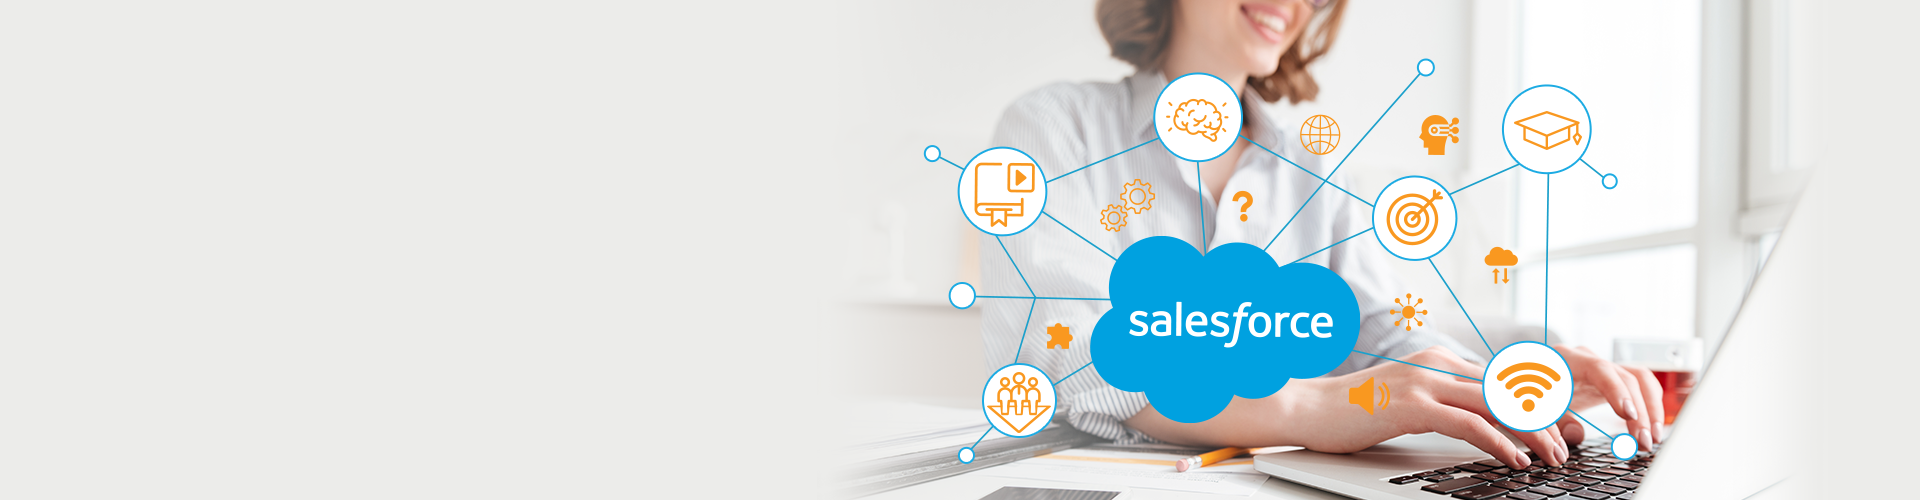 Leverage-Salesforce-in-sync-with-LMS-for-automated-learning-experience